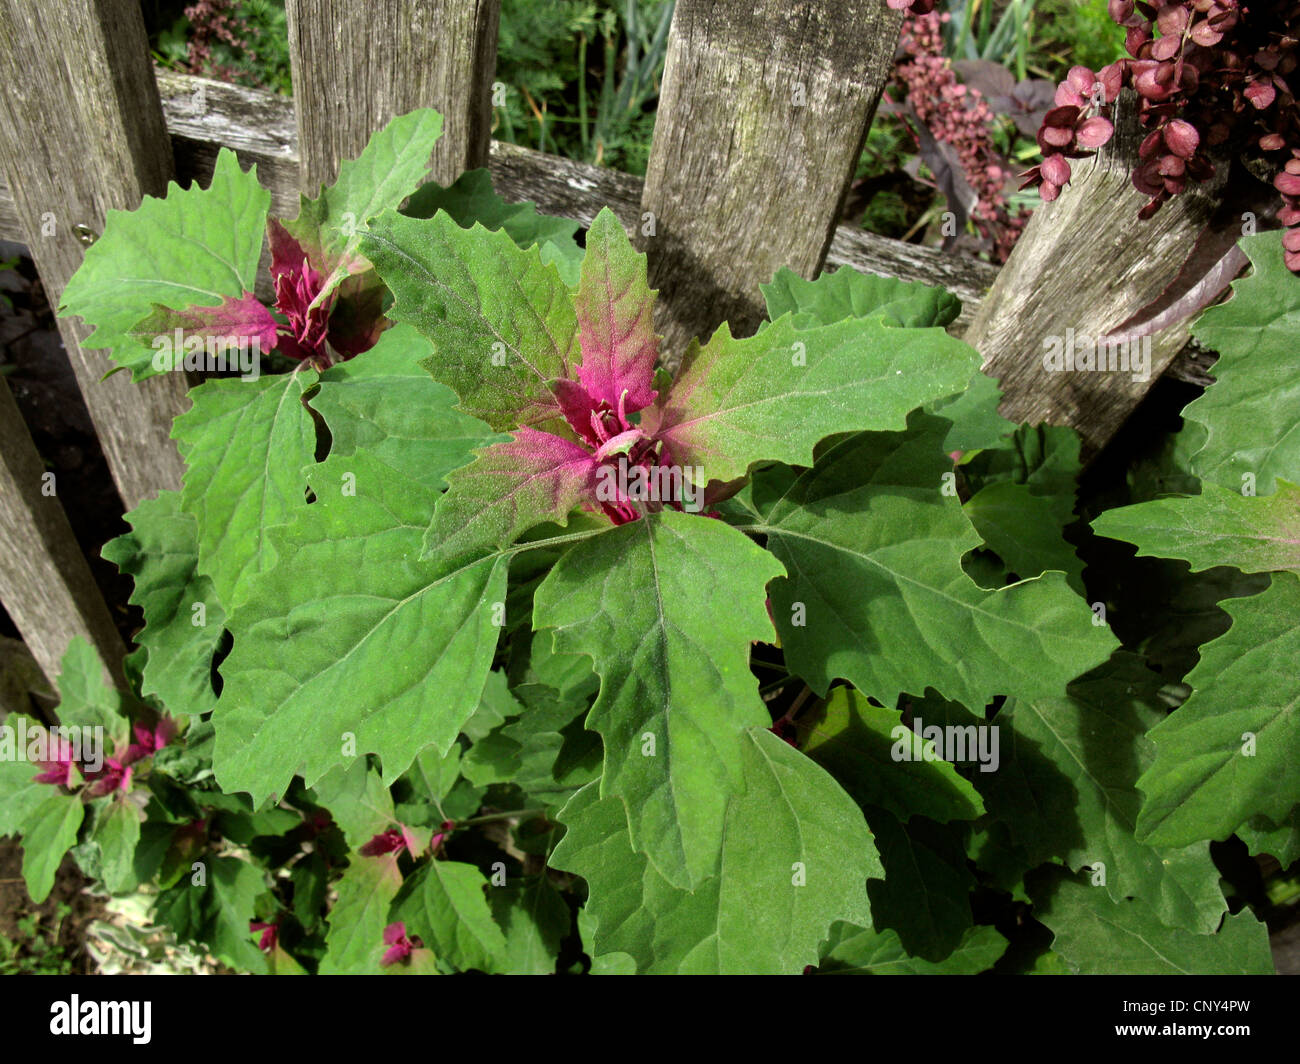 Magenta lamb's quarters, Tree Spinach (Chenopodium giganteum), at a garden fence, Germany - Stock Image